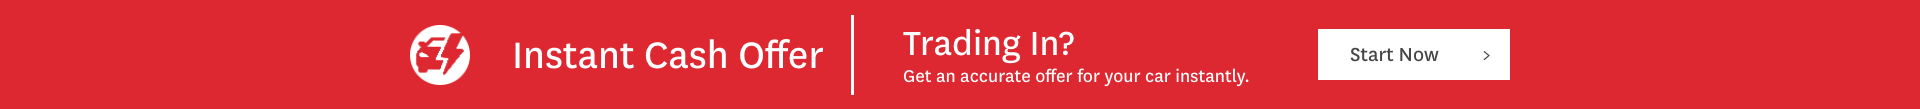 Instant cash offer. Trading in? Get an accurate offer for your car instantly. Start now.